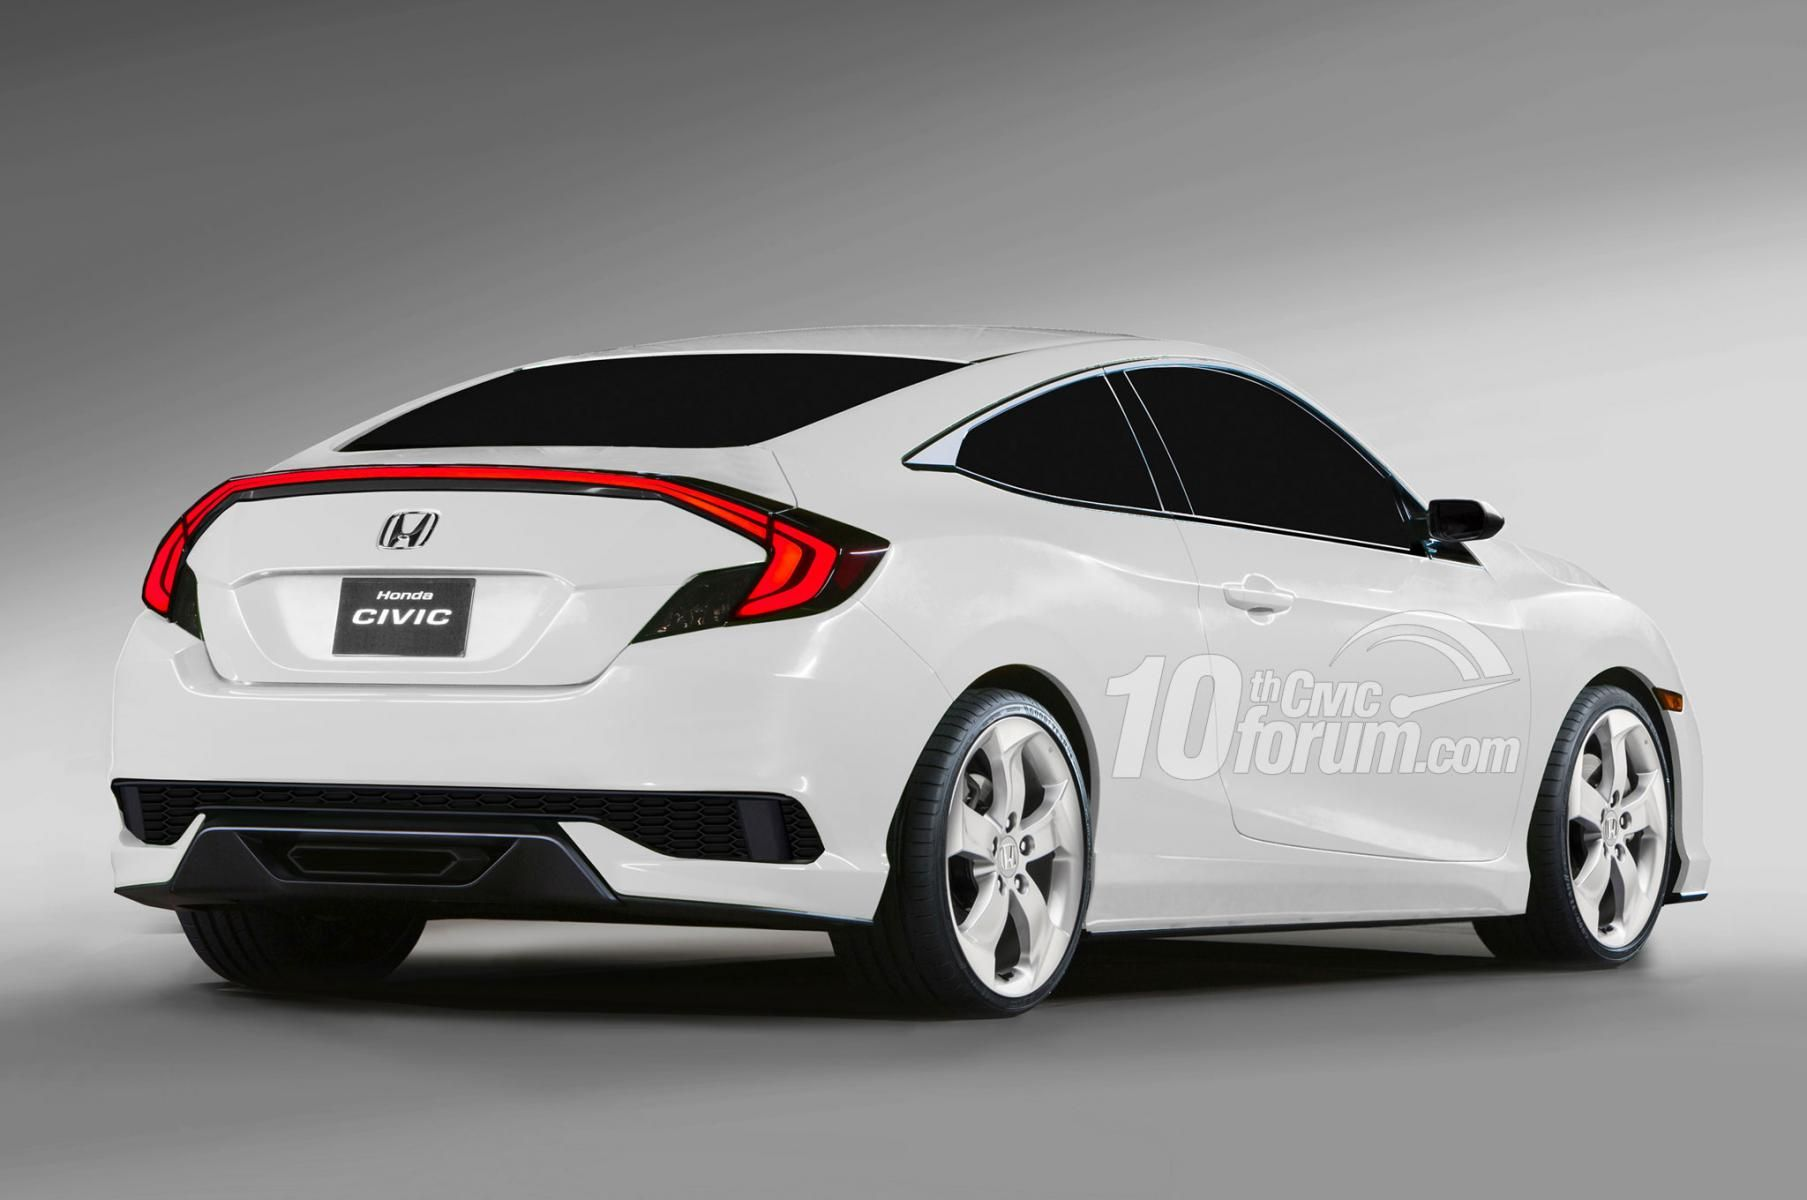 2016 honda civic sedan coupe hatchback renders leaked 10th gen civic forum